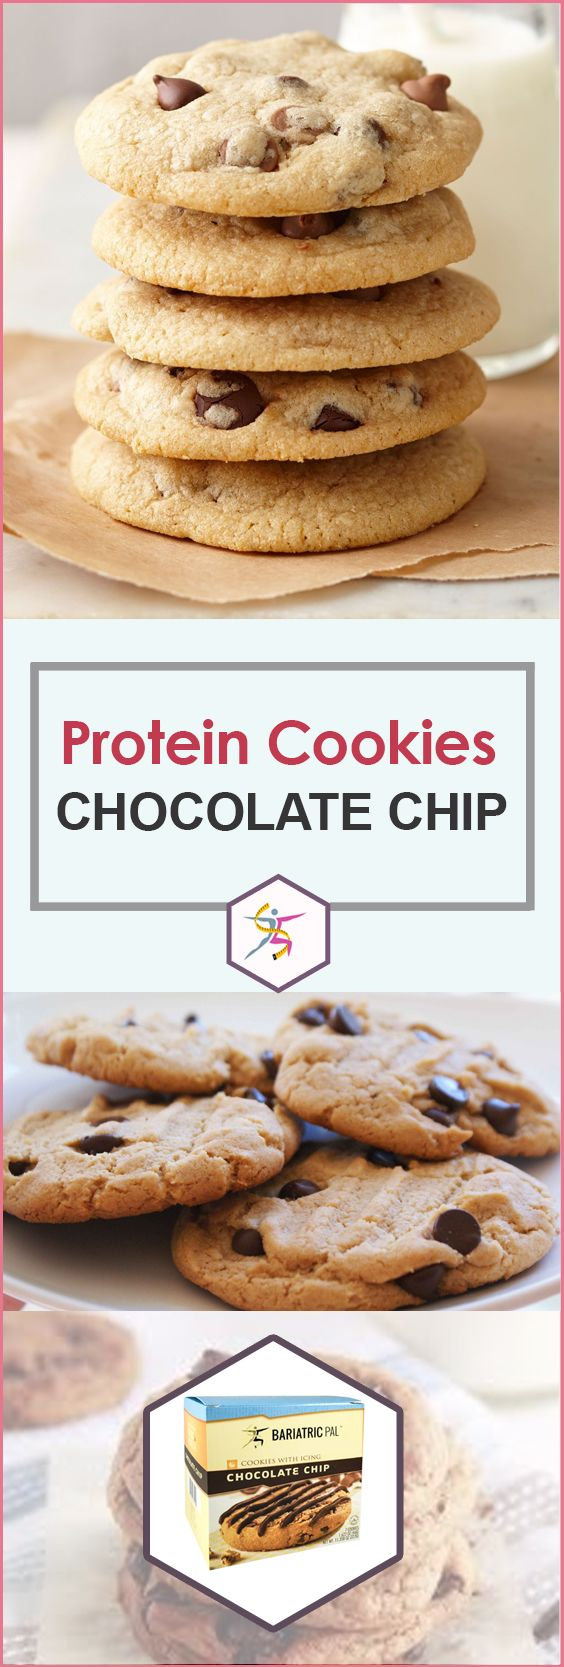 BariatricPal 14g Protein Cookies - Chocolate Chip Chocolate with DrizzleFresh-baked cookies with a drizzle of icing…a sweet, satisfying taste that you may dream of after weight loss surgery or when you're dieting. Take away the calories and sugar, add some protein, and you have BariatricPal cookies! They have 165 calories, 5 grams of sugar, and a whopping 15 grams of protein to give you a guilt-free snack or dessert.Highlights:14 grams protein165 calories5 grams sugarSuitable